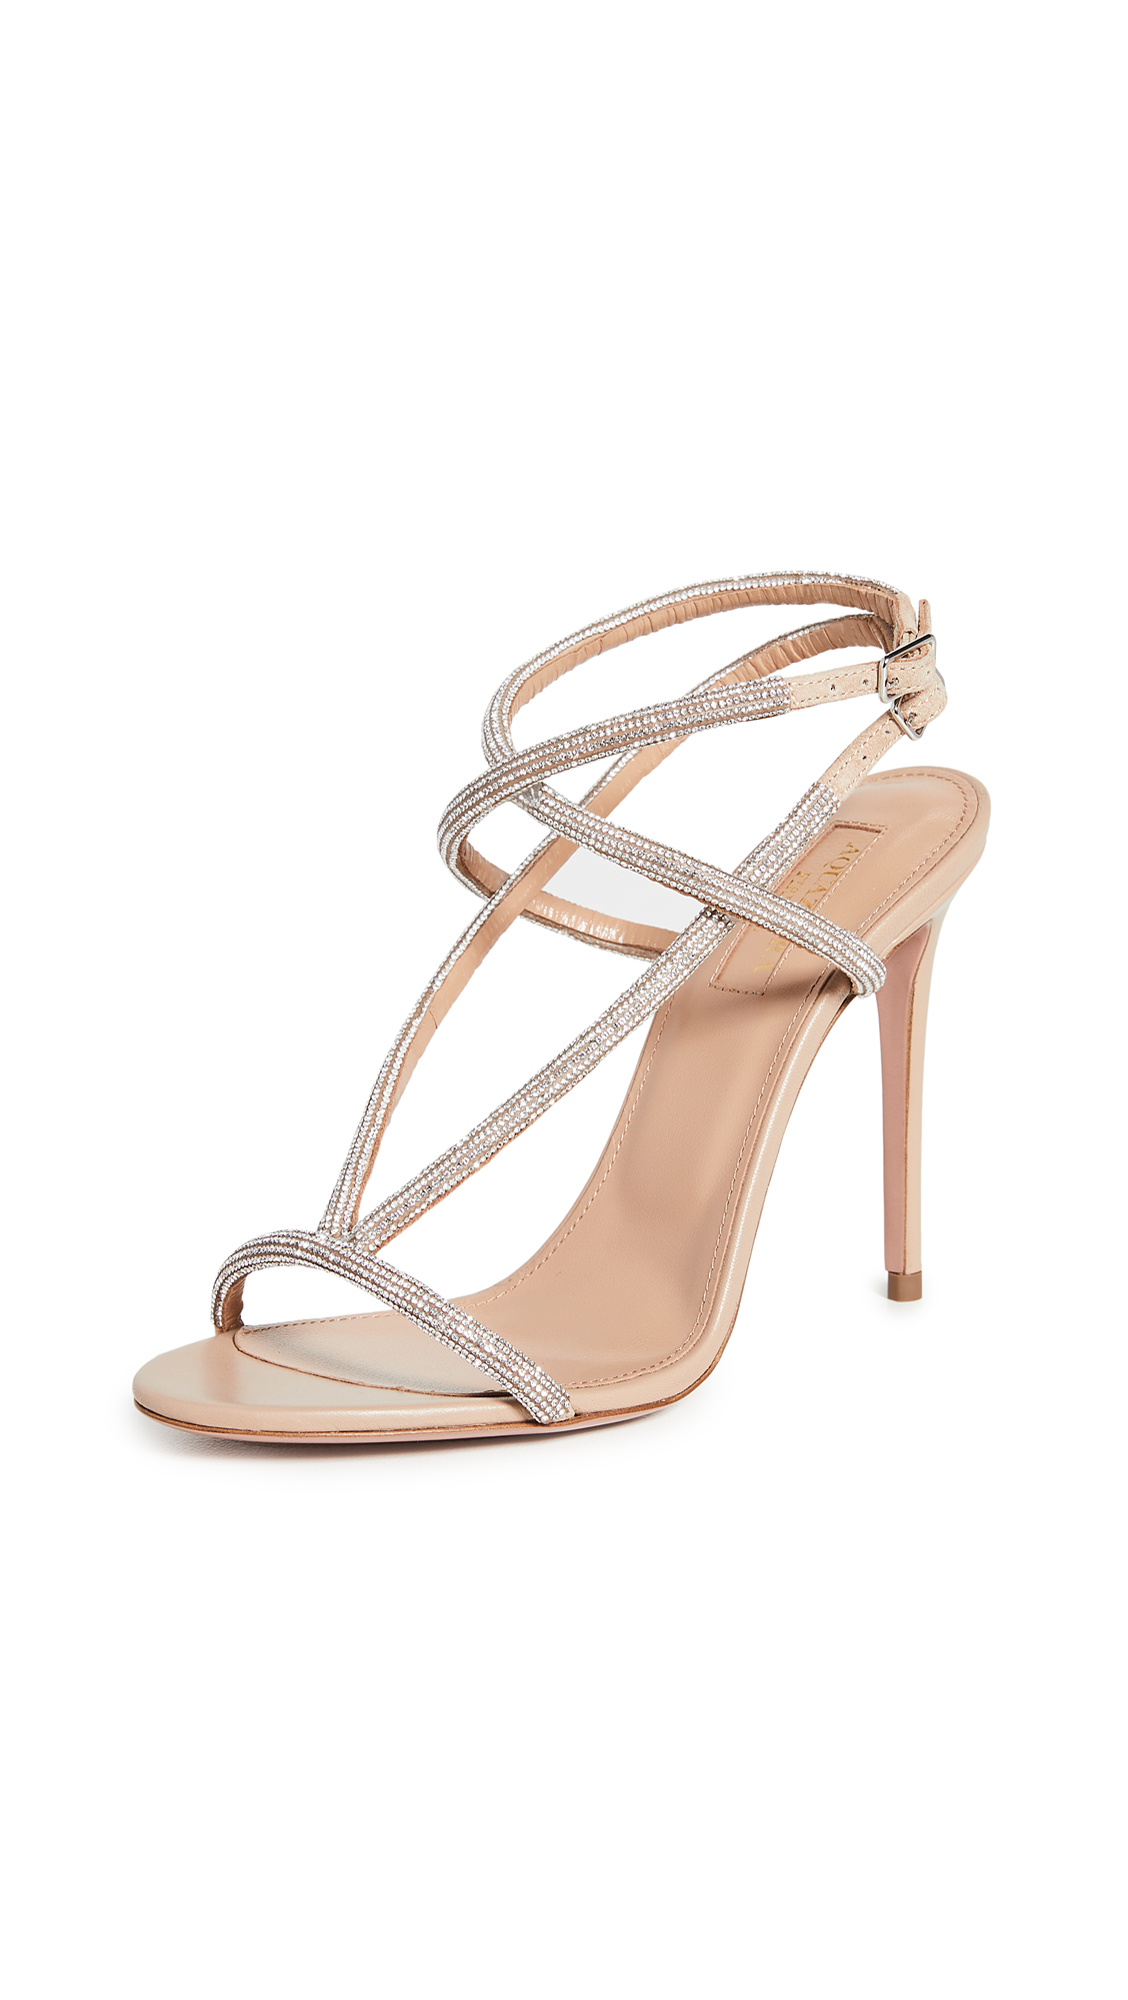 Buy Aquazzura 105mm Moondust Sandals online, shop Aquazzura